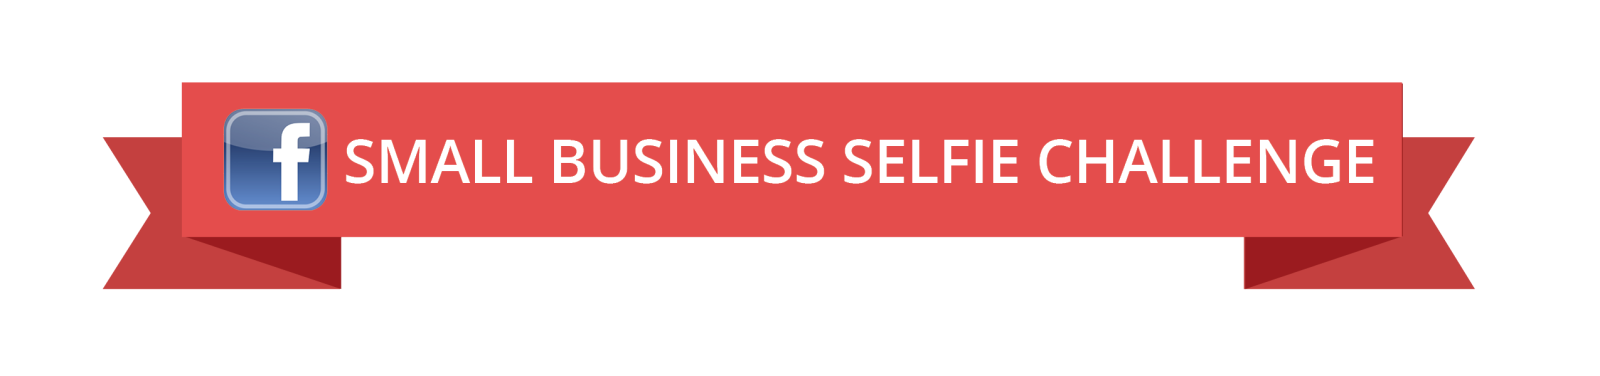 Facebook Small Business Selfie Challenge